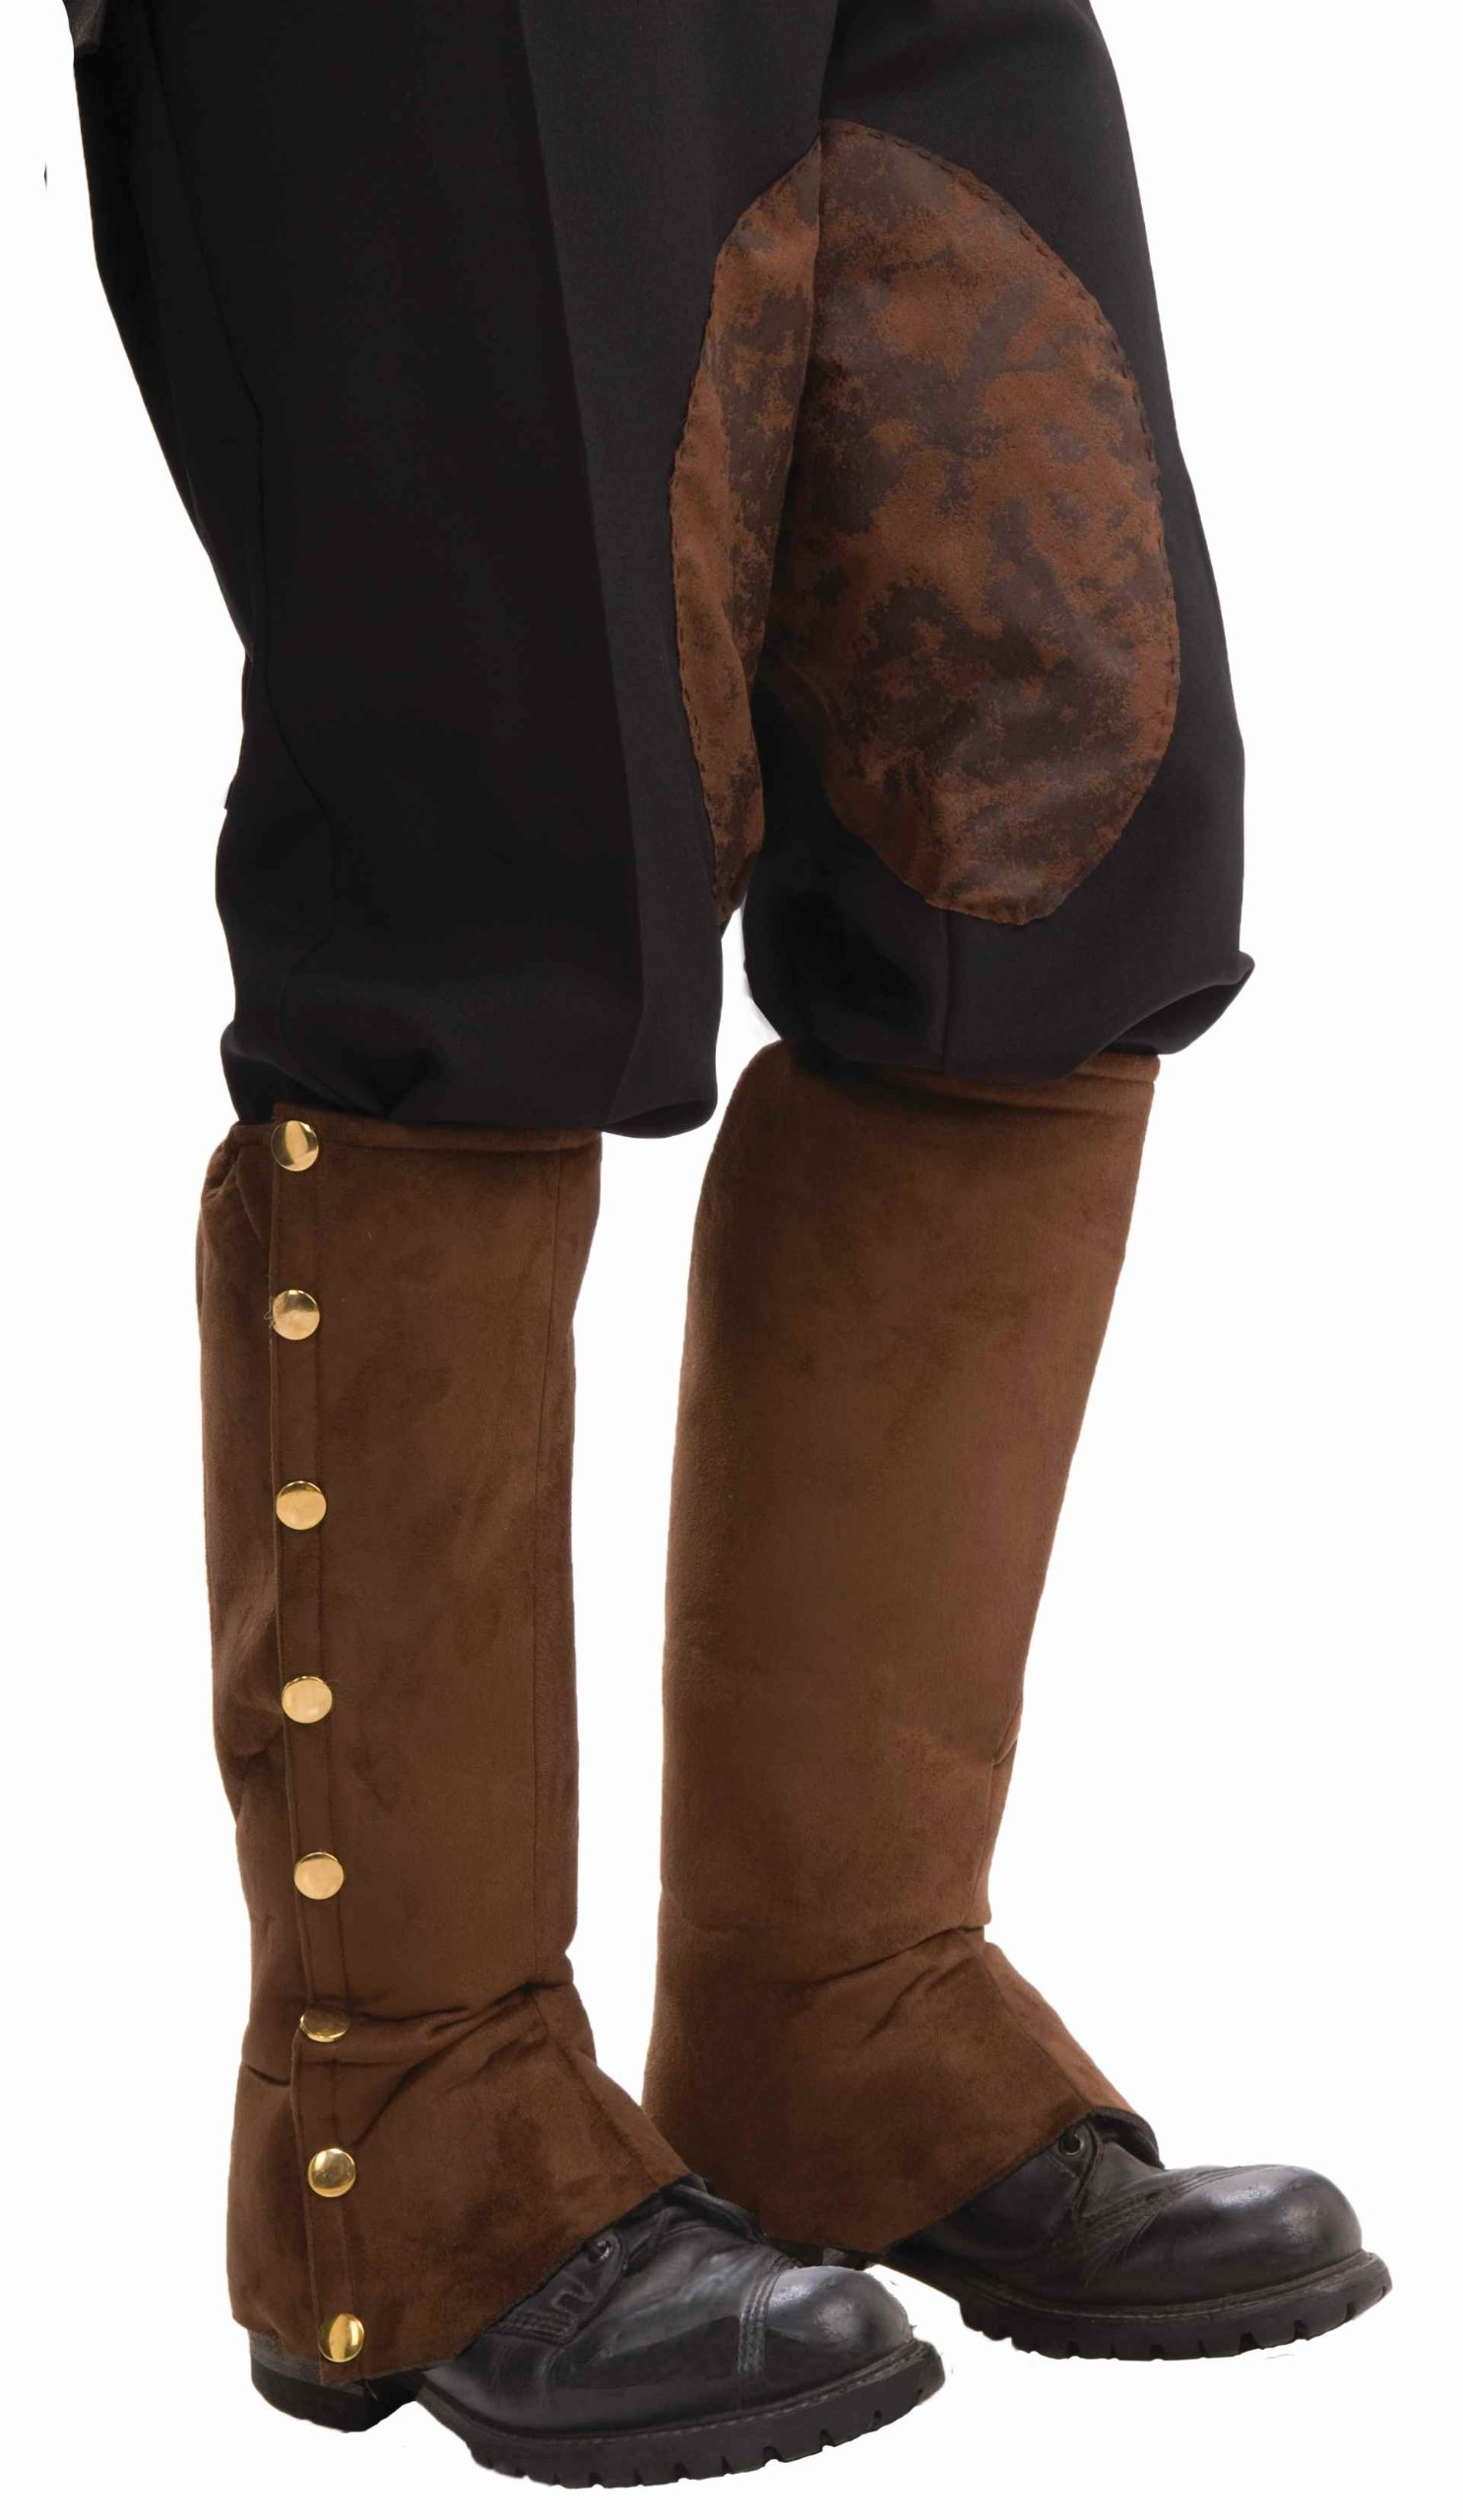 Forum Novelties Men's Adult Steampunk Suede Spats Costume Accessory 3